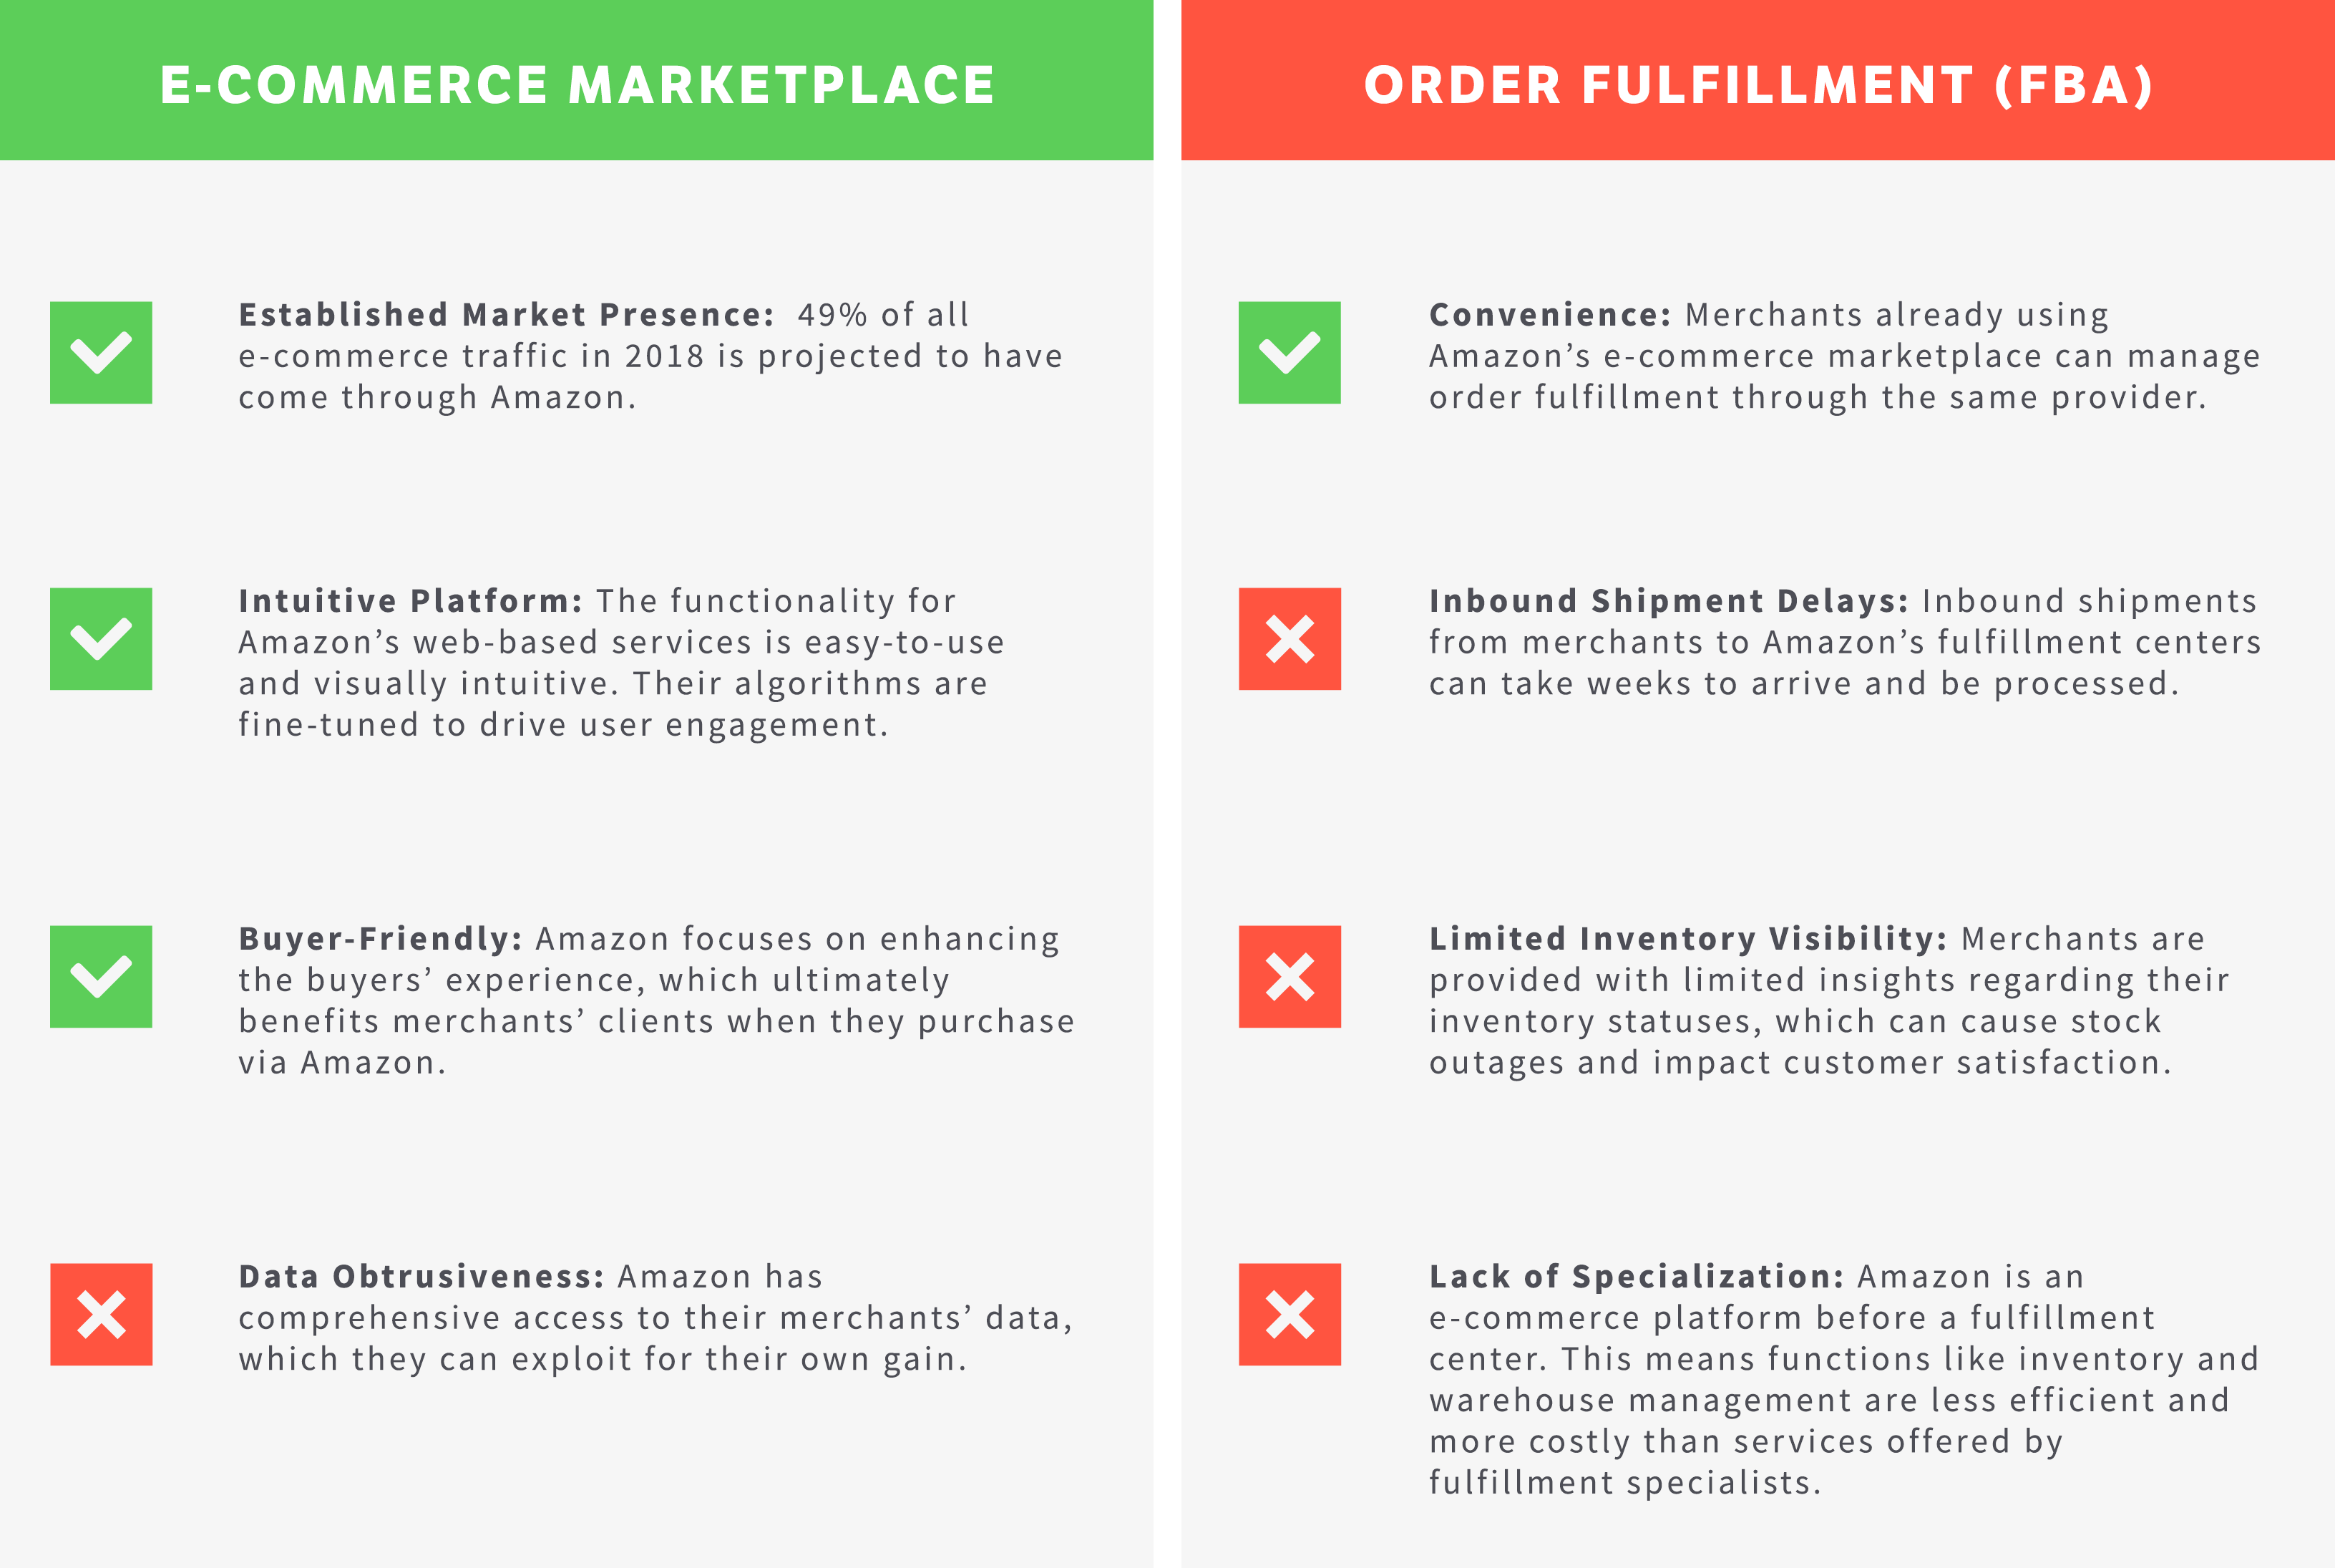 A comparison of Amazon's e-commerce marketplace with their order fulfillment (FBA) services